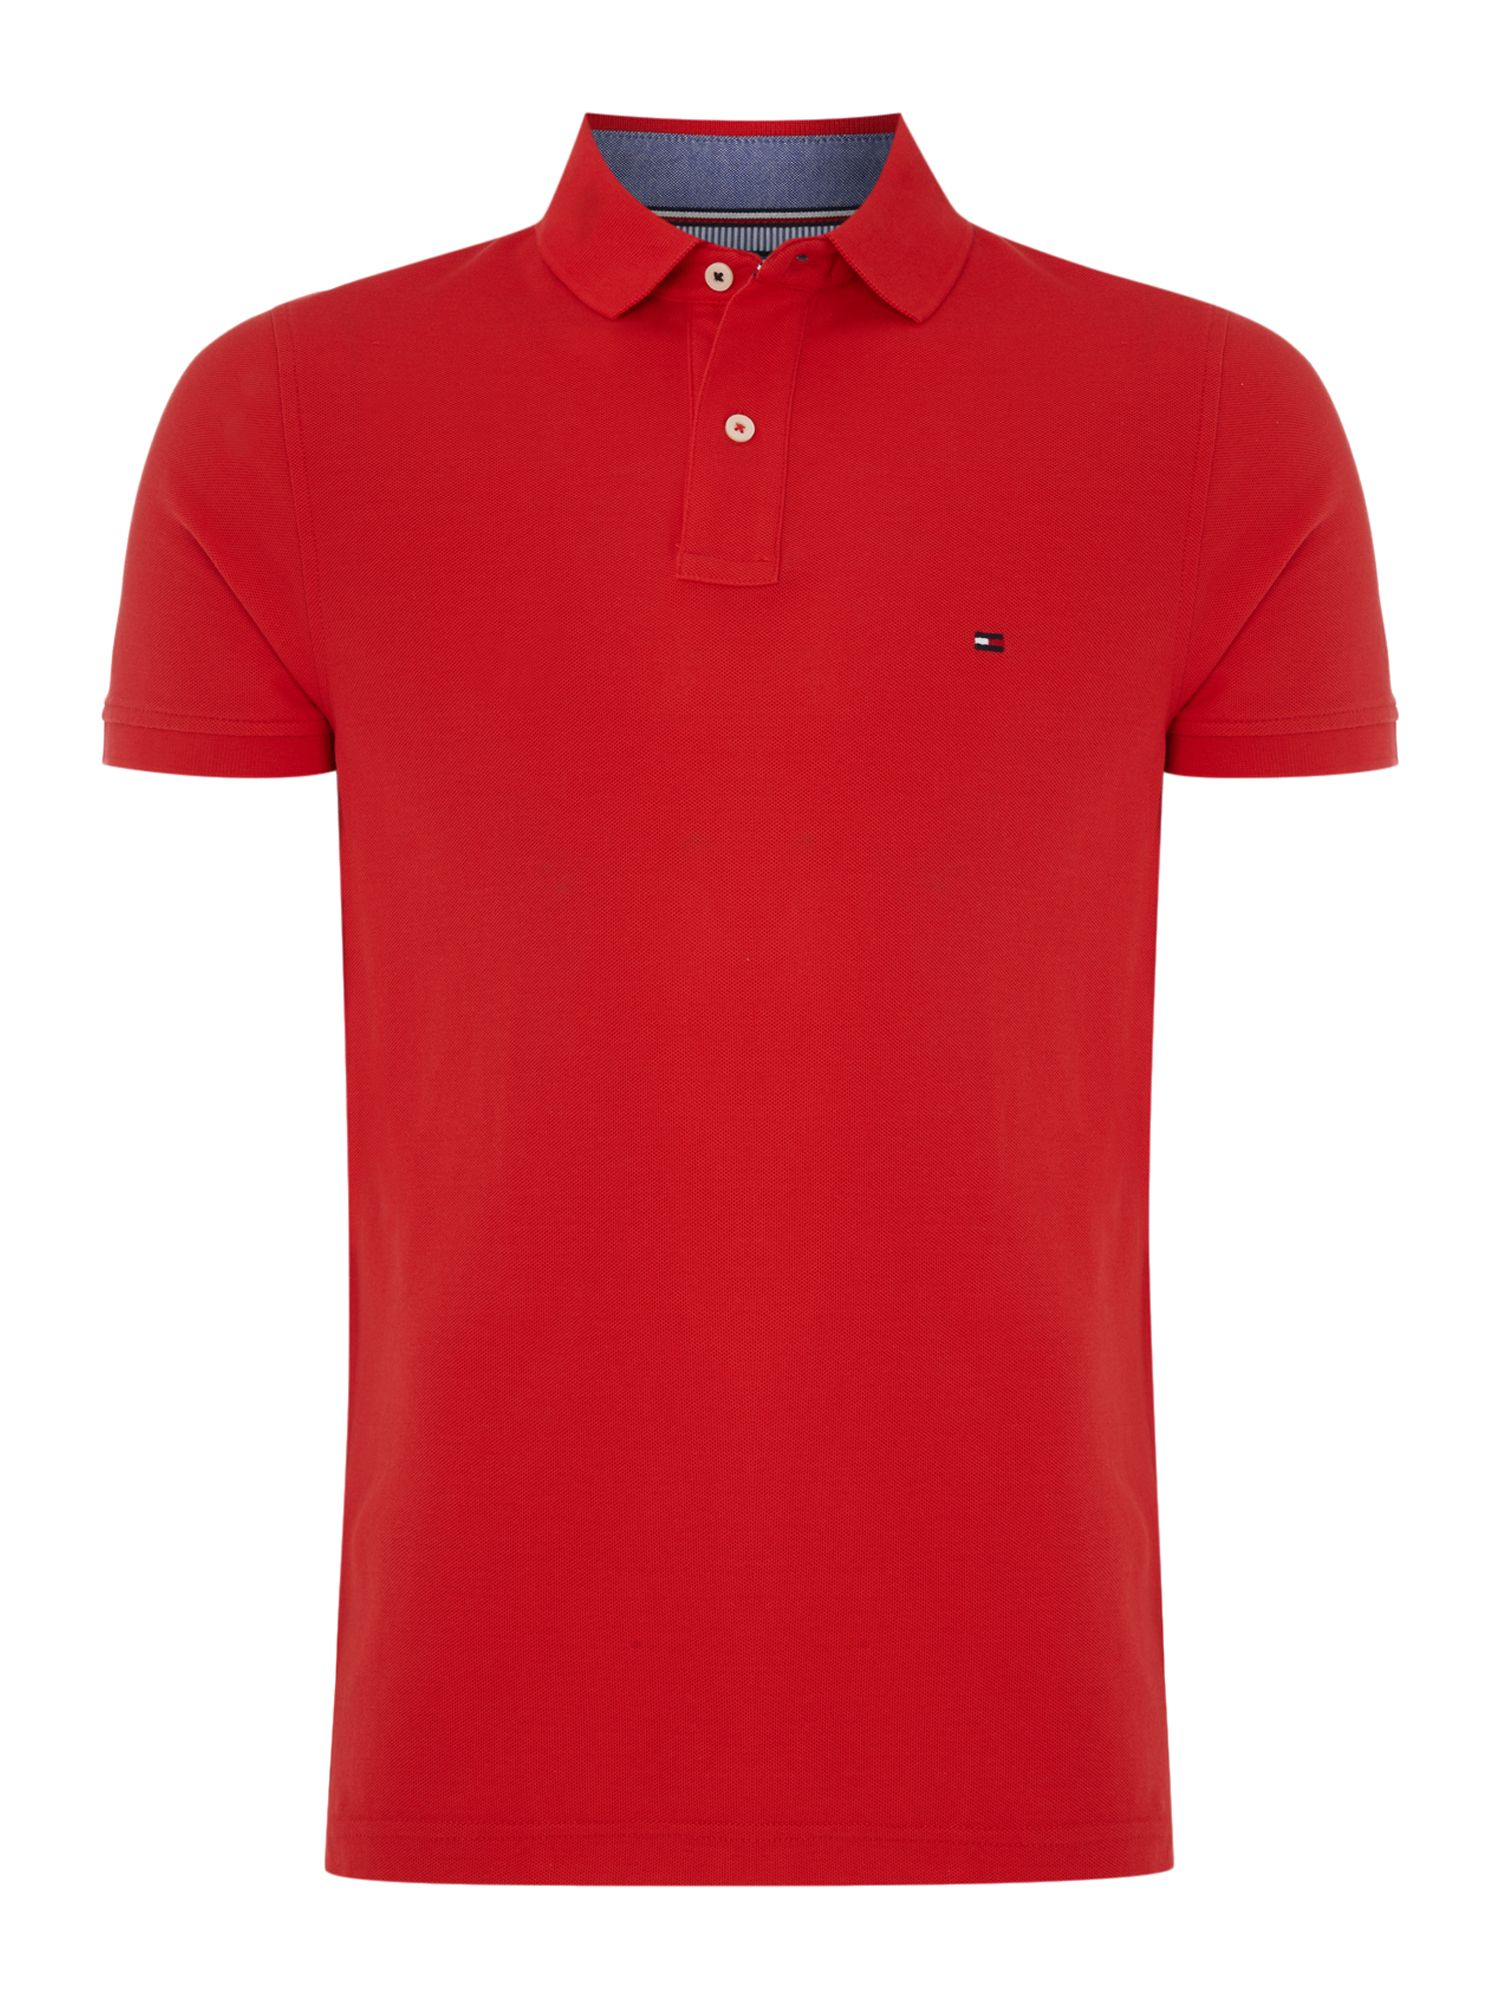 Men's Tommy Hilfiger Performance polo top, Dark Red